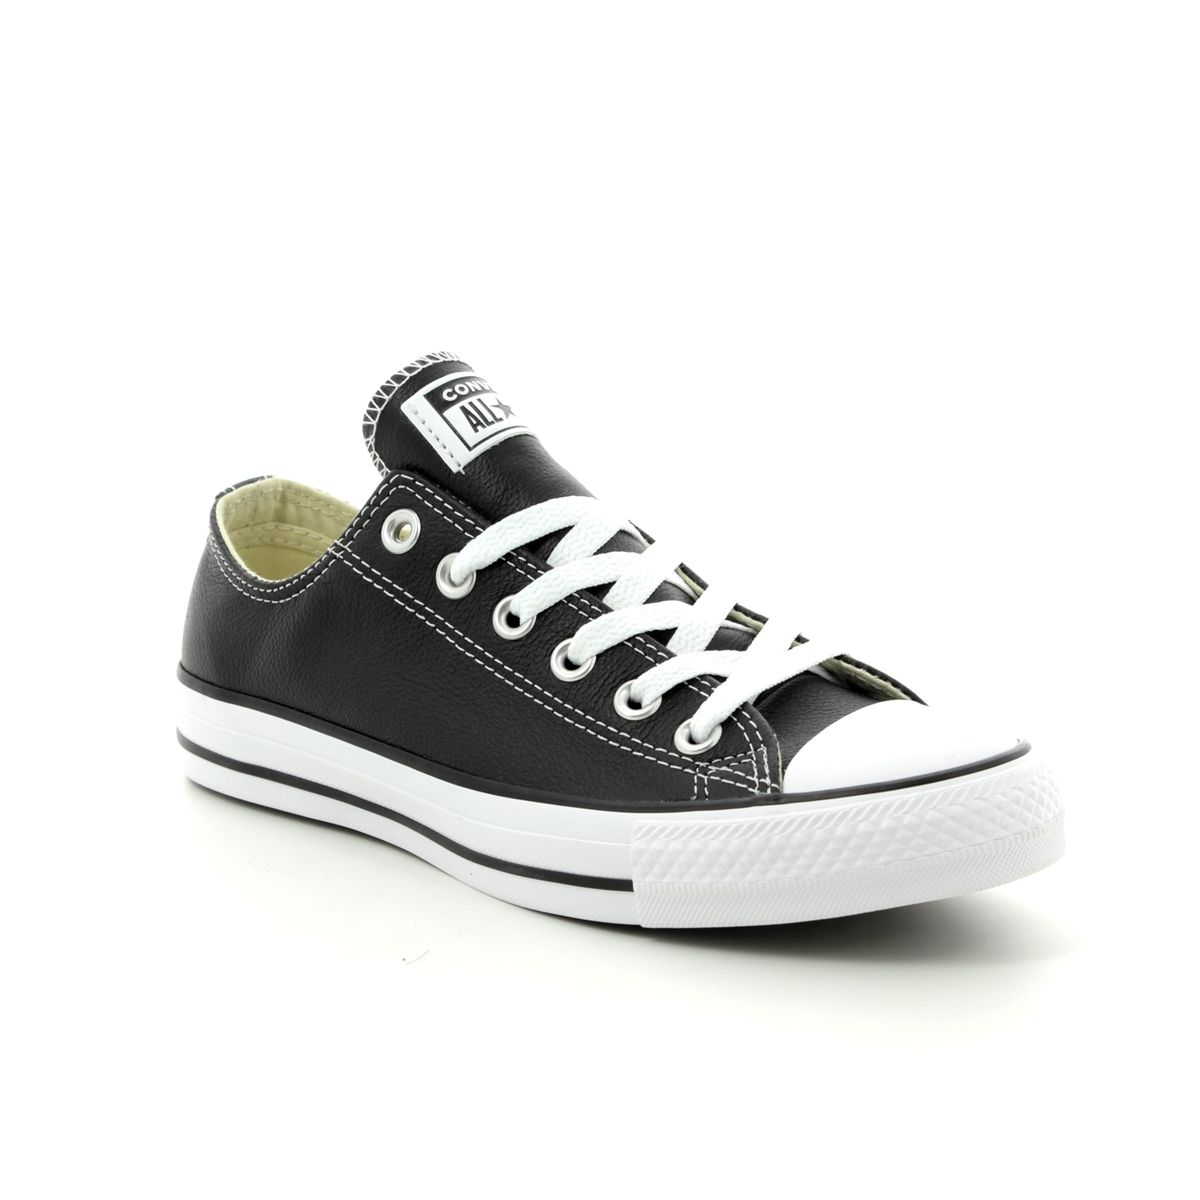 c09849f71d69 Converse Trainers - Black leather - 132174C ALLSTAR OX Leather